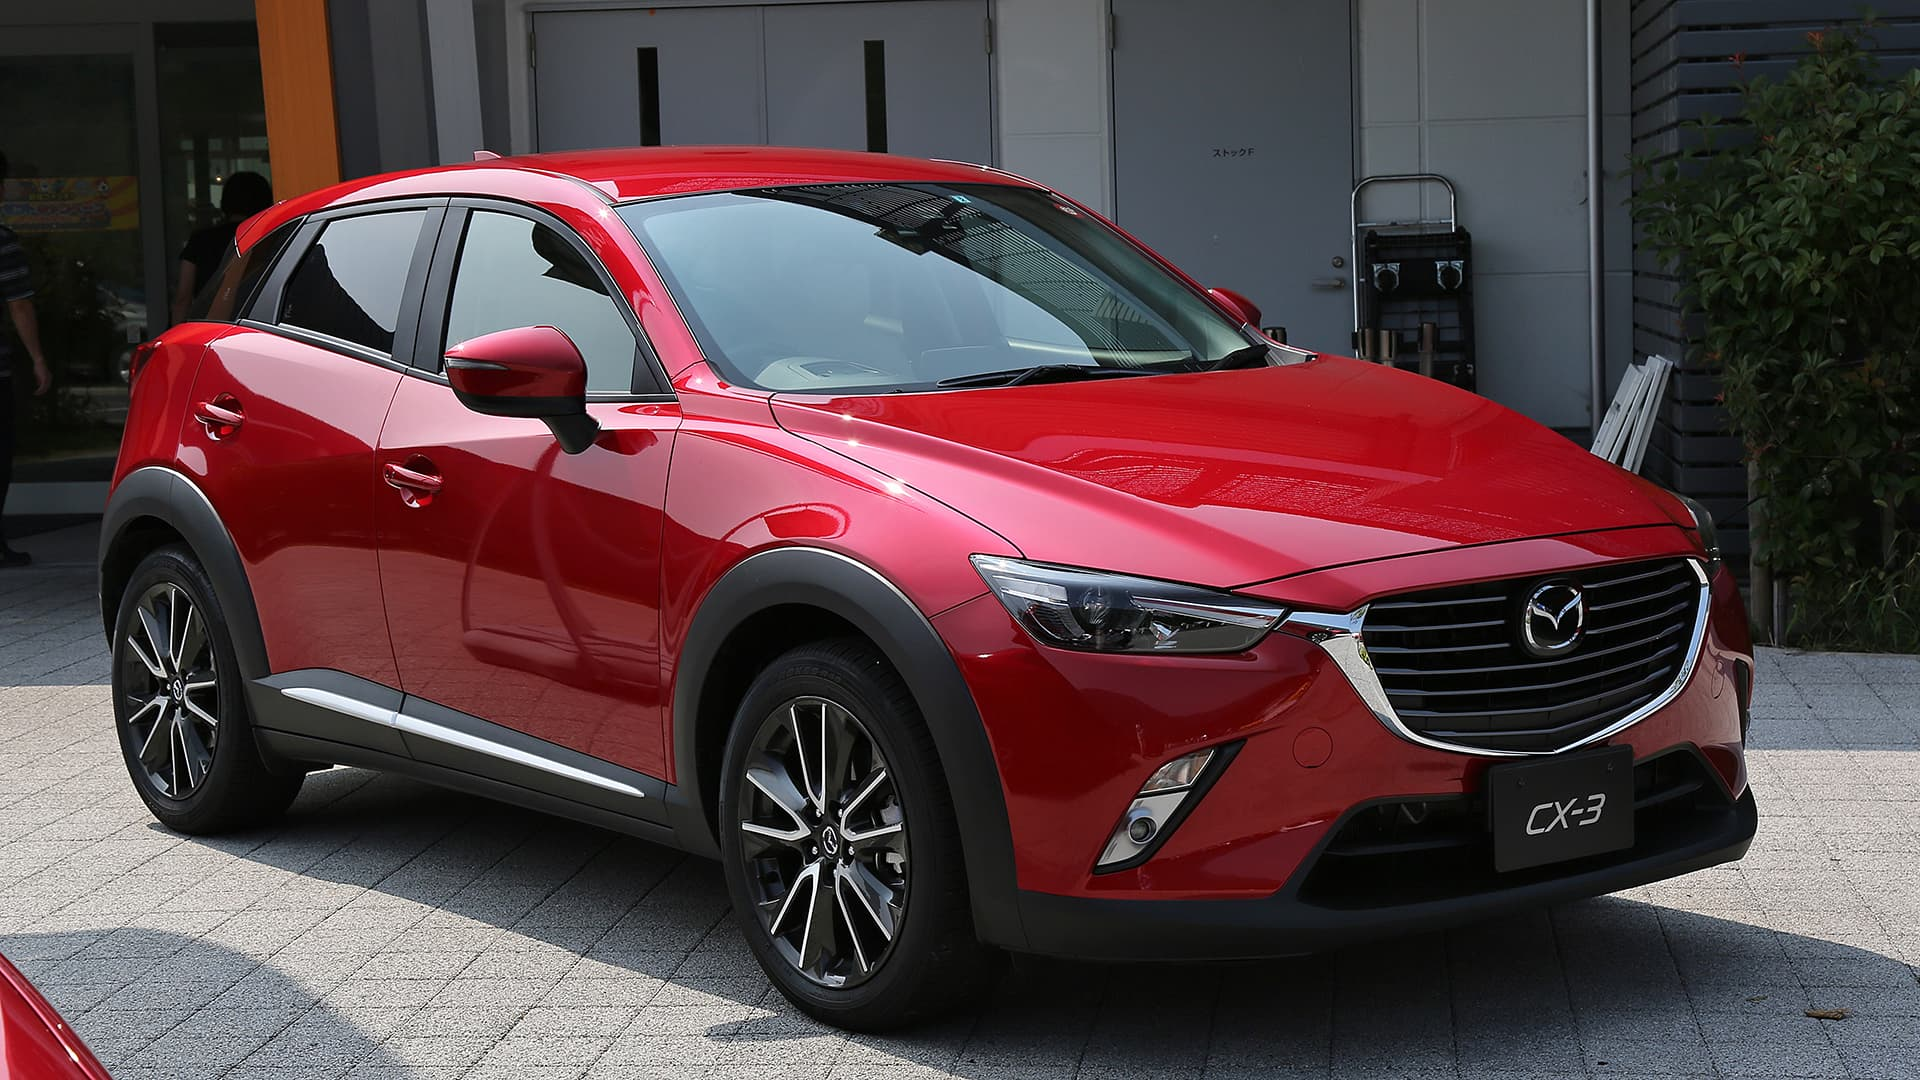 Mazda CX 3 2016 red wallpapers High Quality